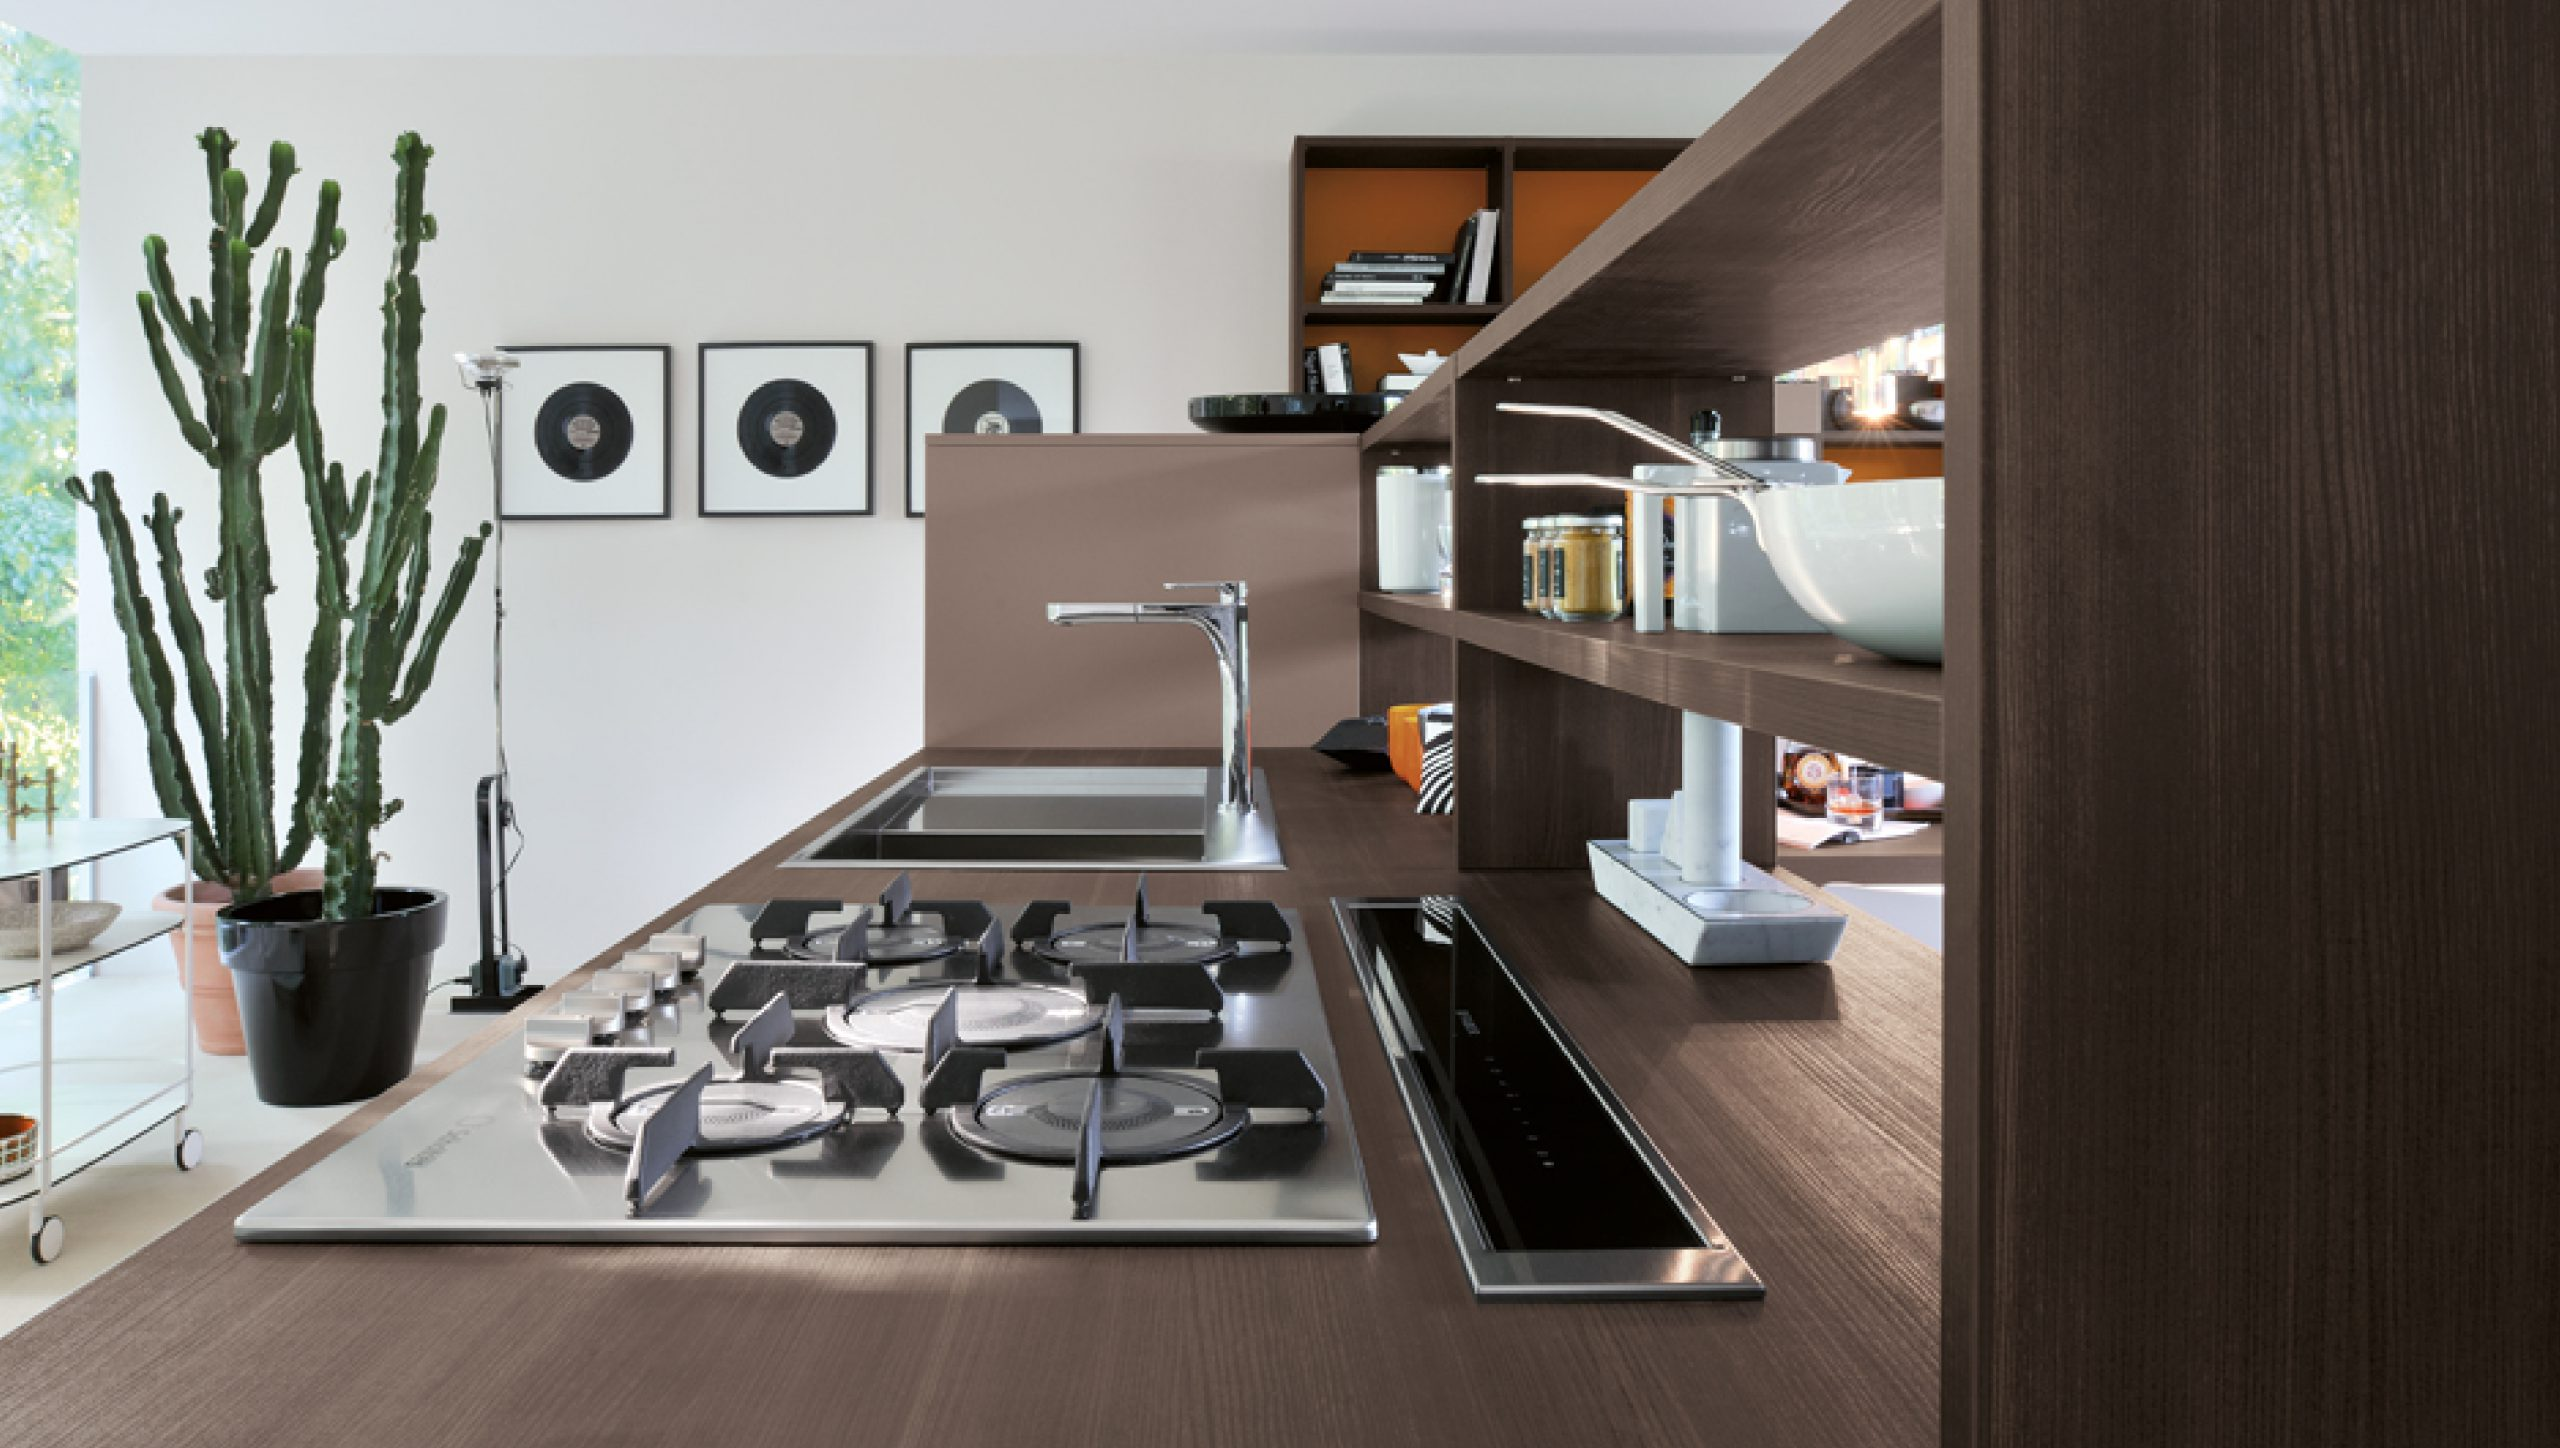 Modular Kitchens: Here's Everything You Need To Know